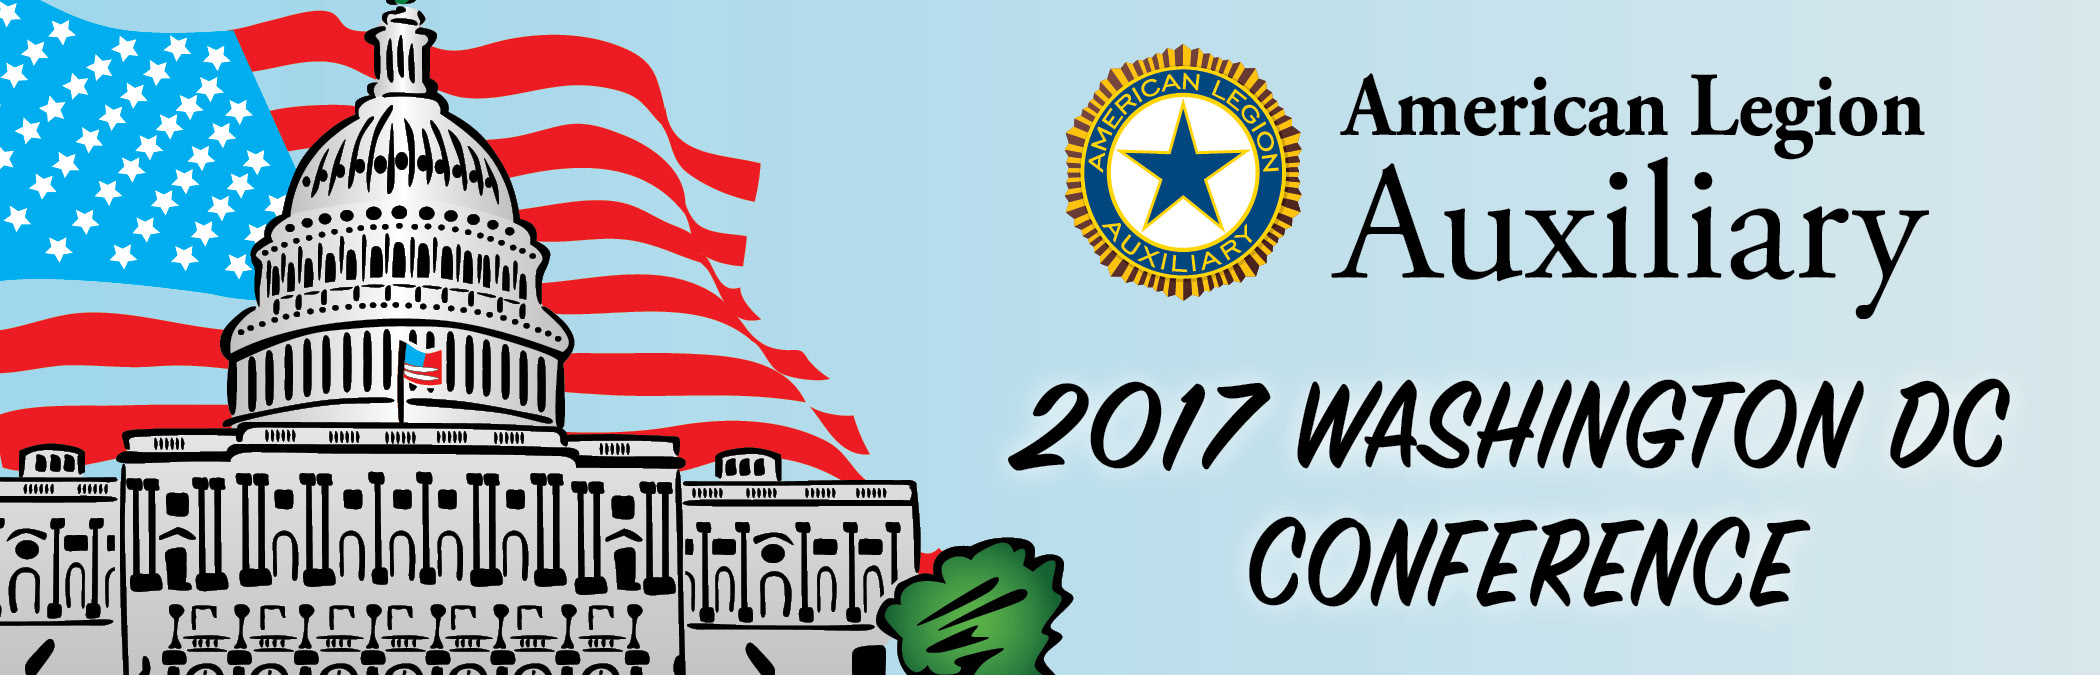 2017 Washington DC Conference